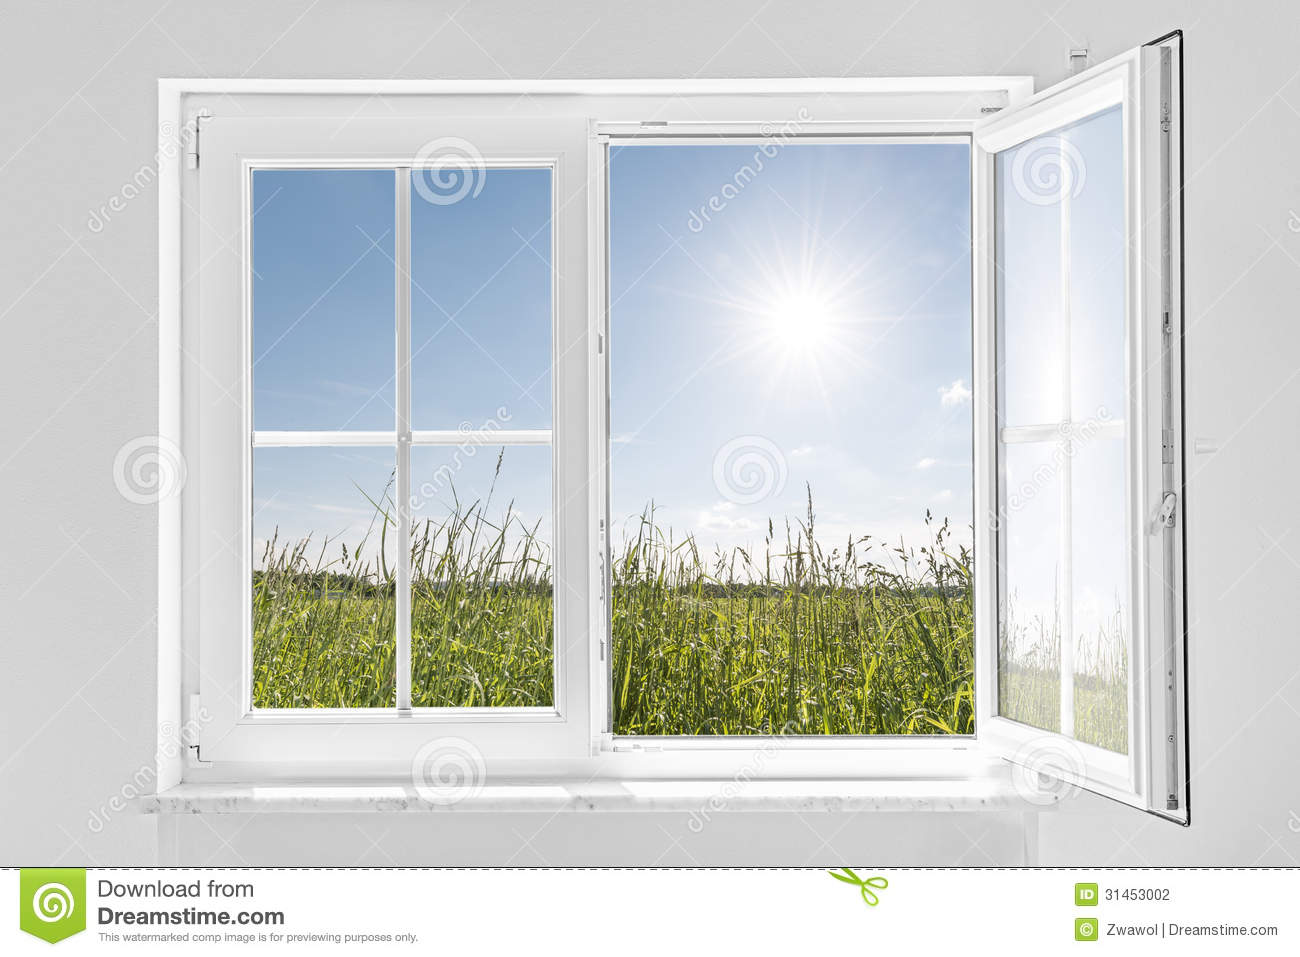 wei es halbes offenes fenster mit sonne stockfotografie bild. Black Bedroom Furniture Sets. Home Design Ideas